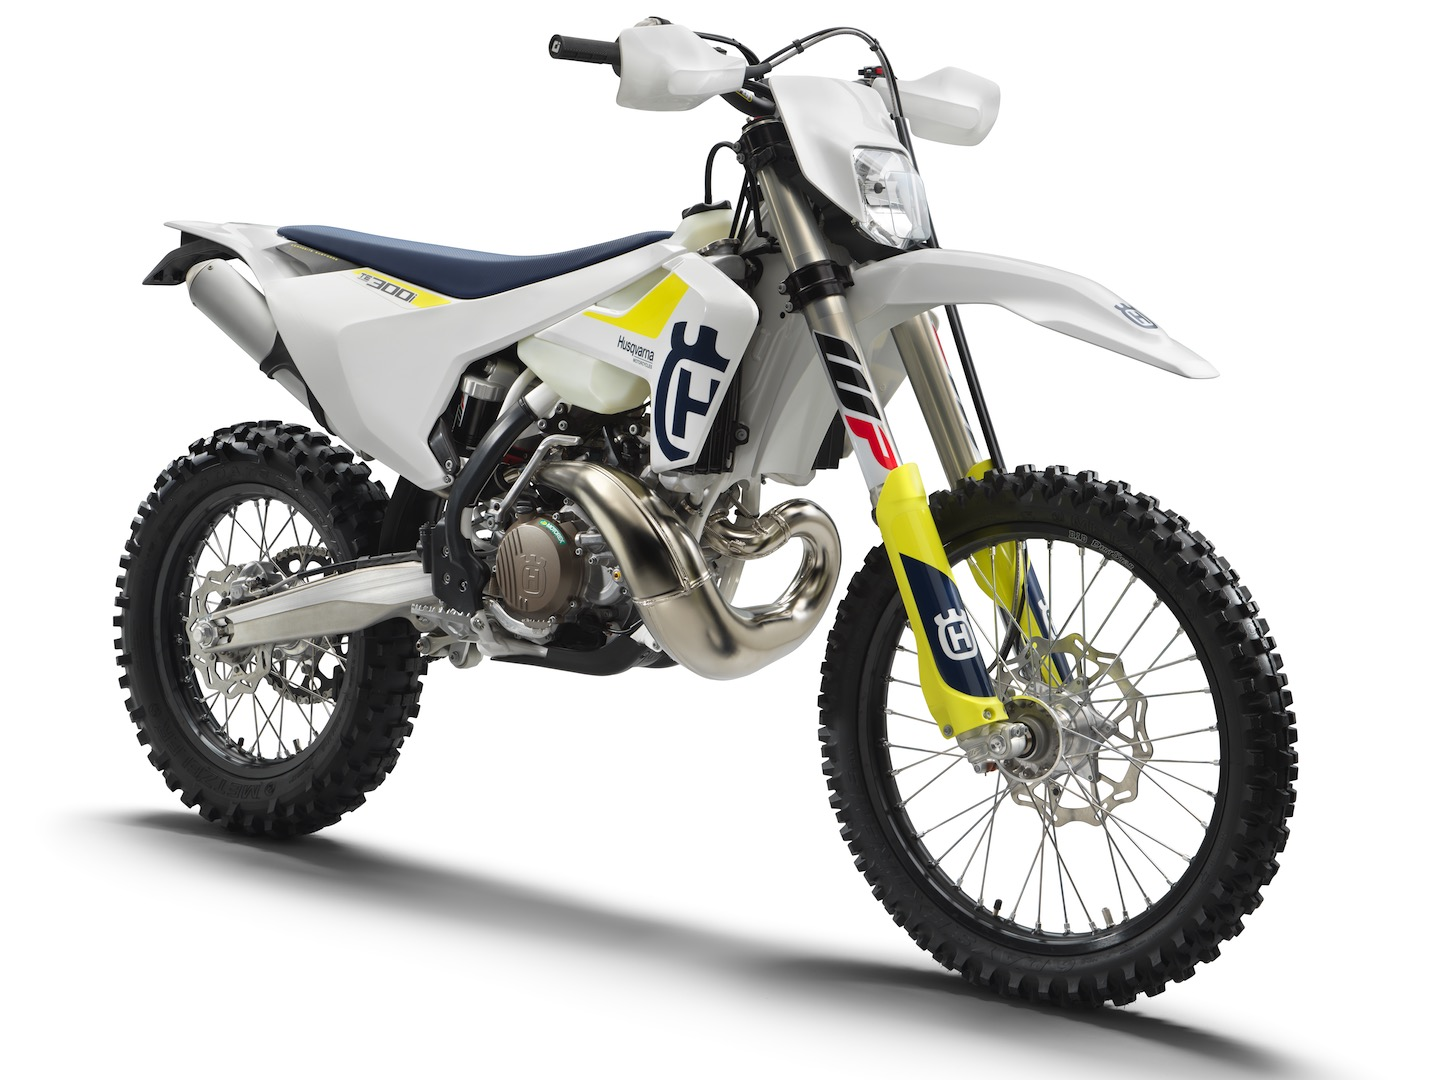 2019 Husqvarna TE 300i for sale